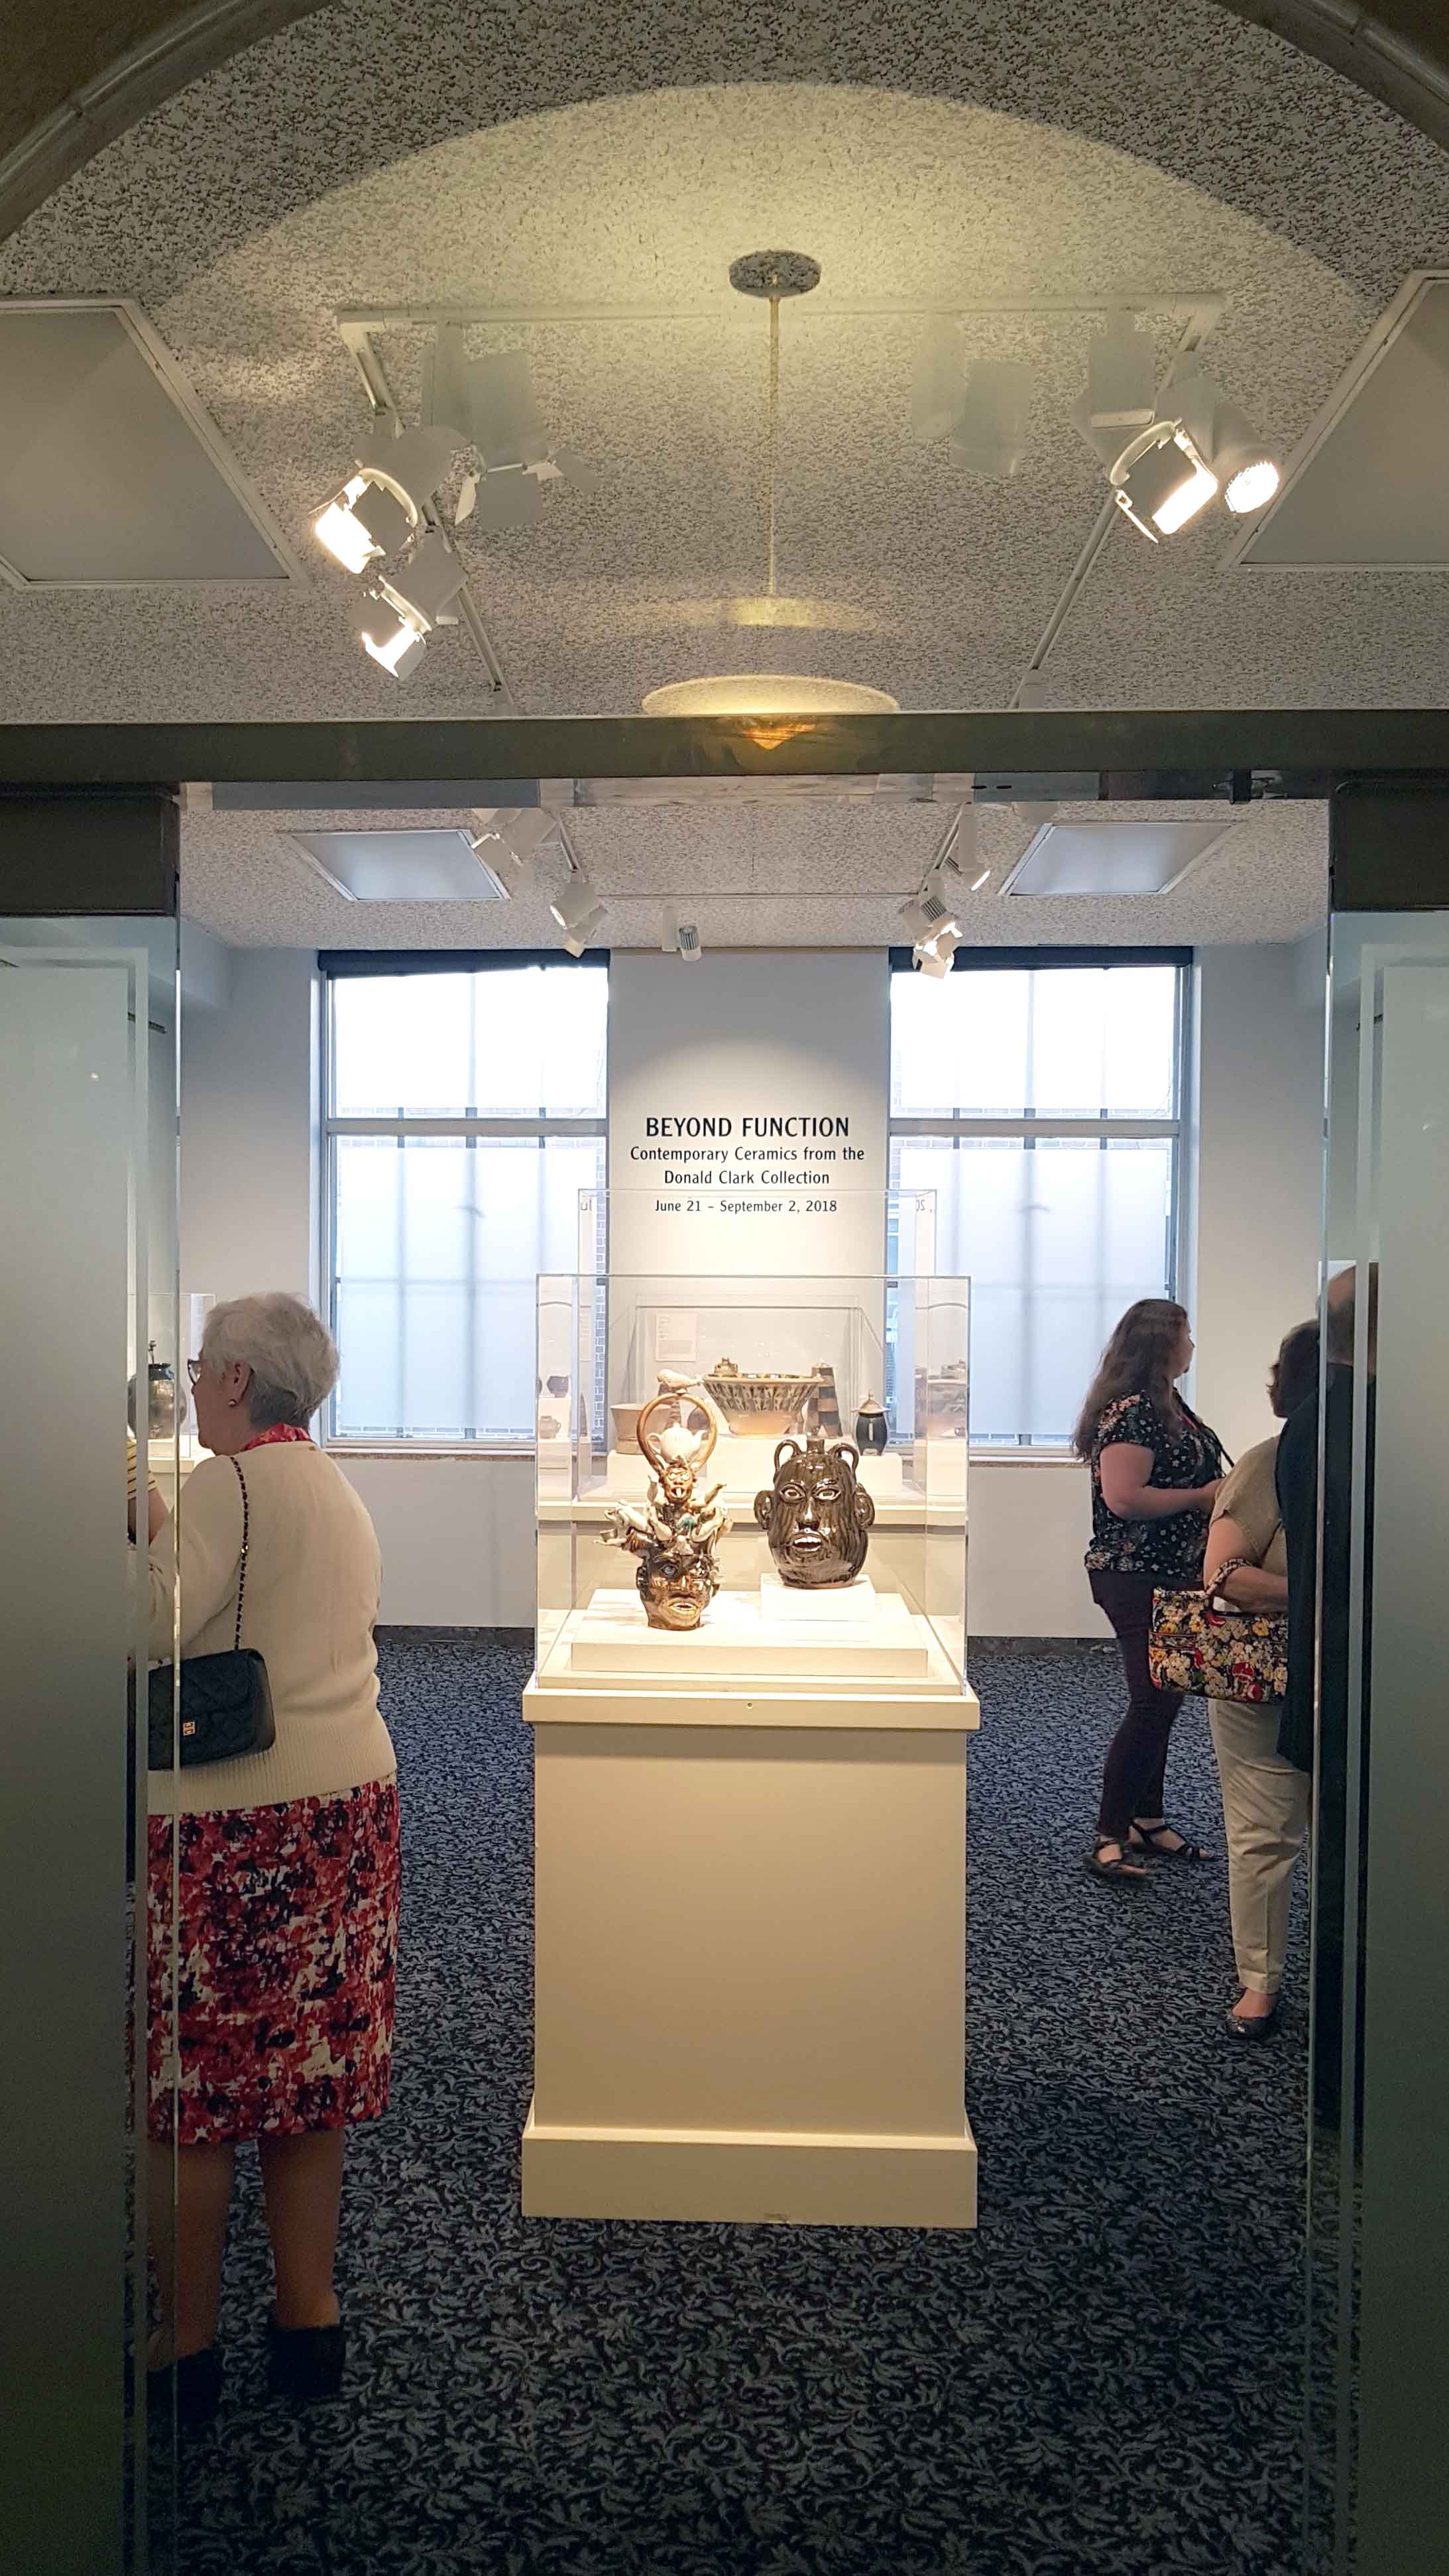 Donal Clark Collection Exhibition entrance, Springfield Museums, Massachusetts, June, 2018.